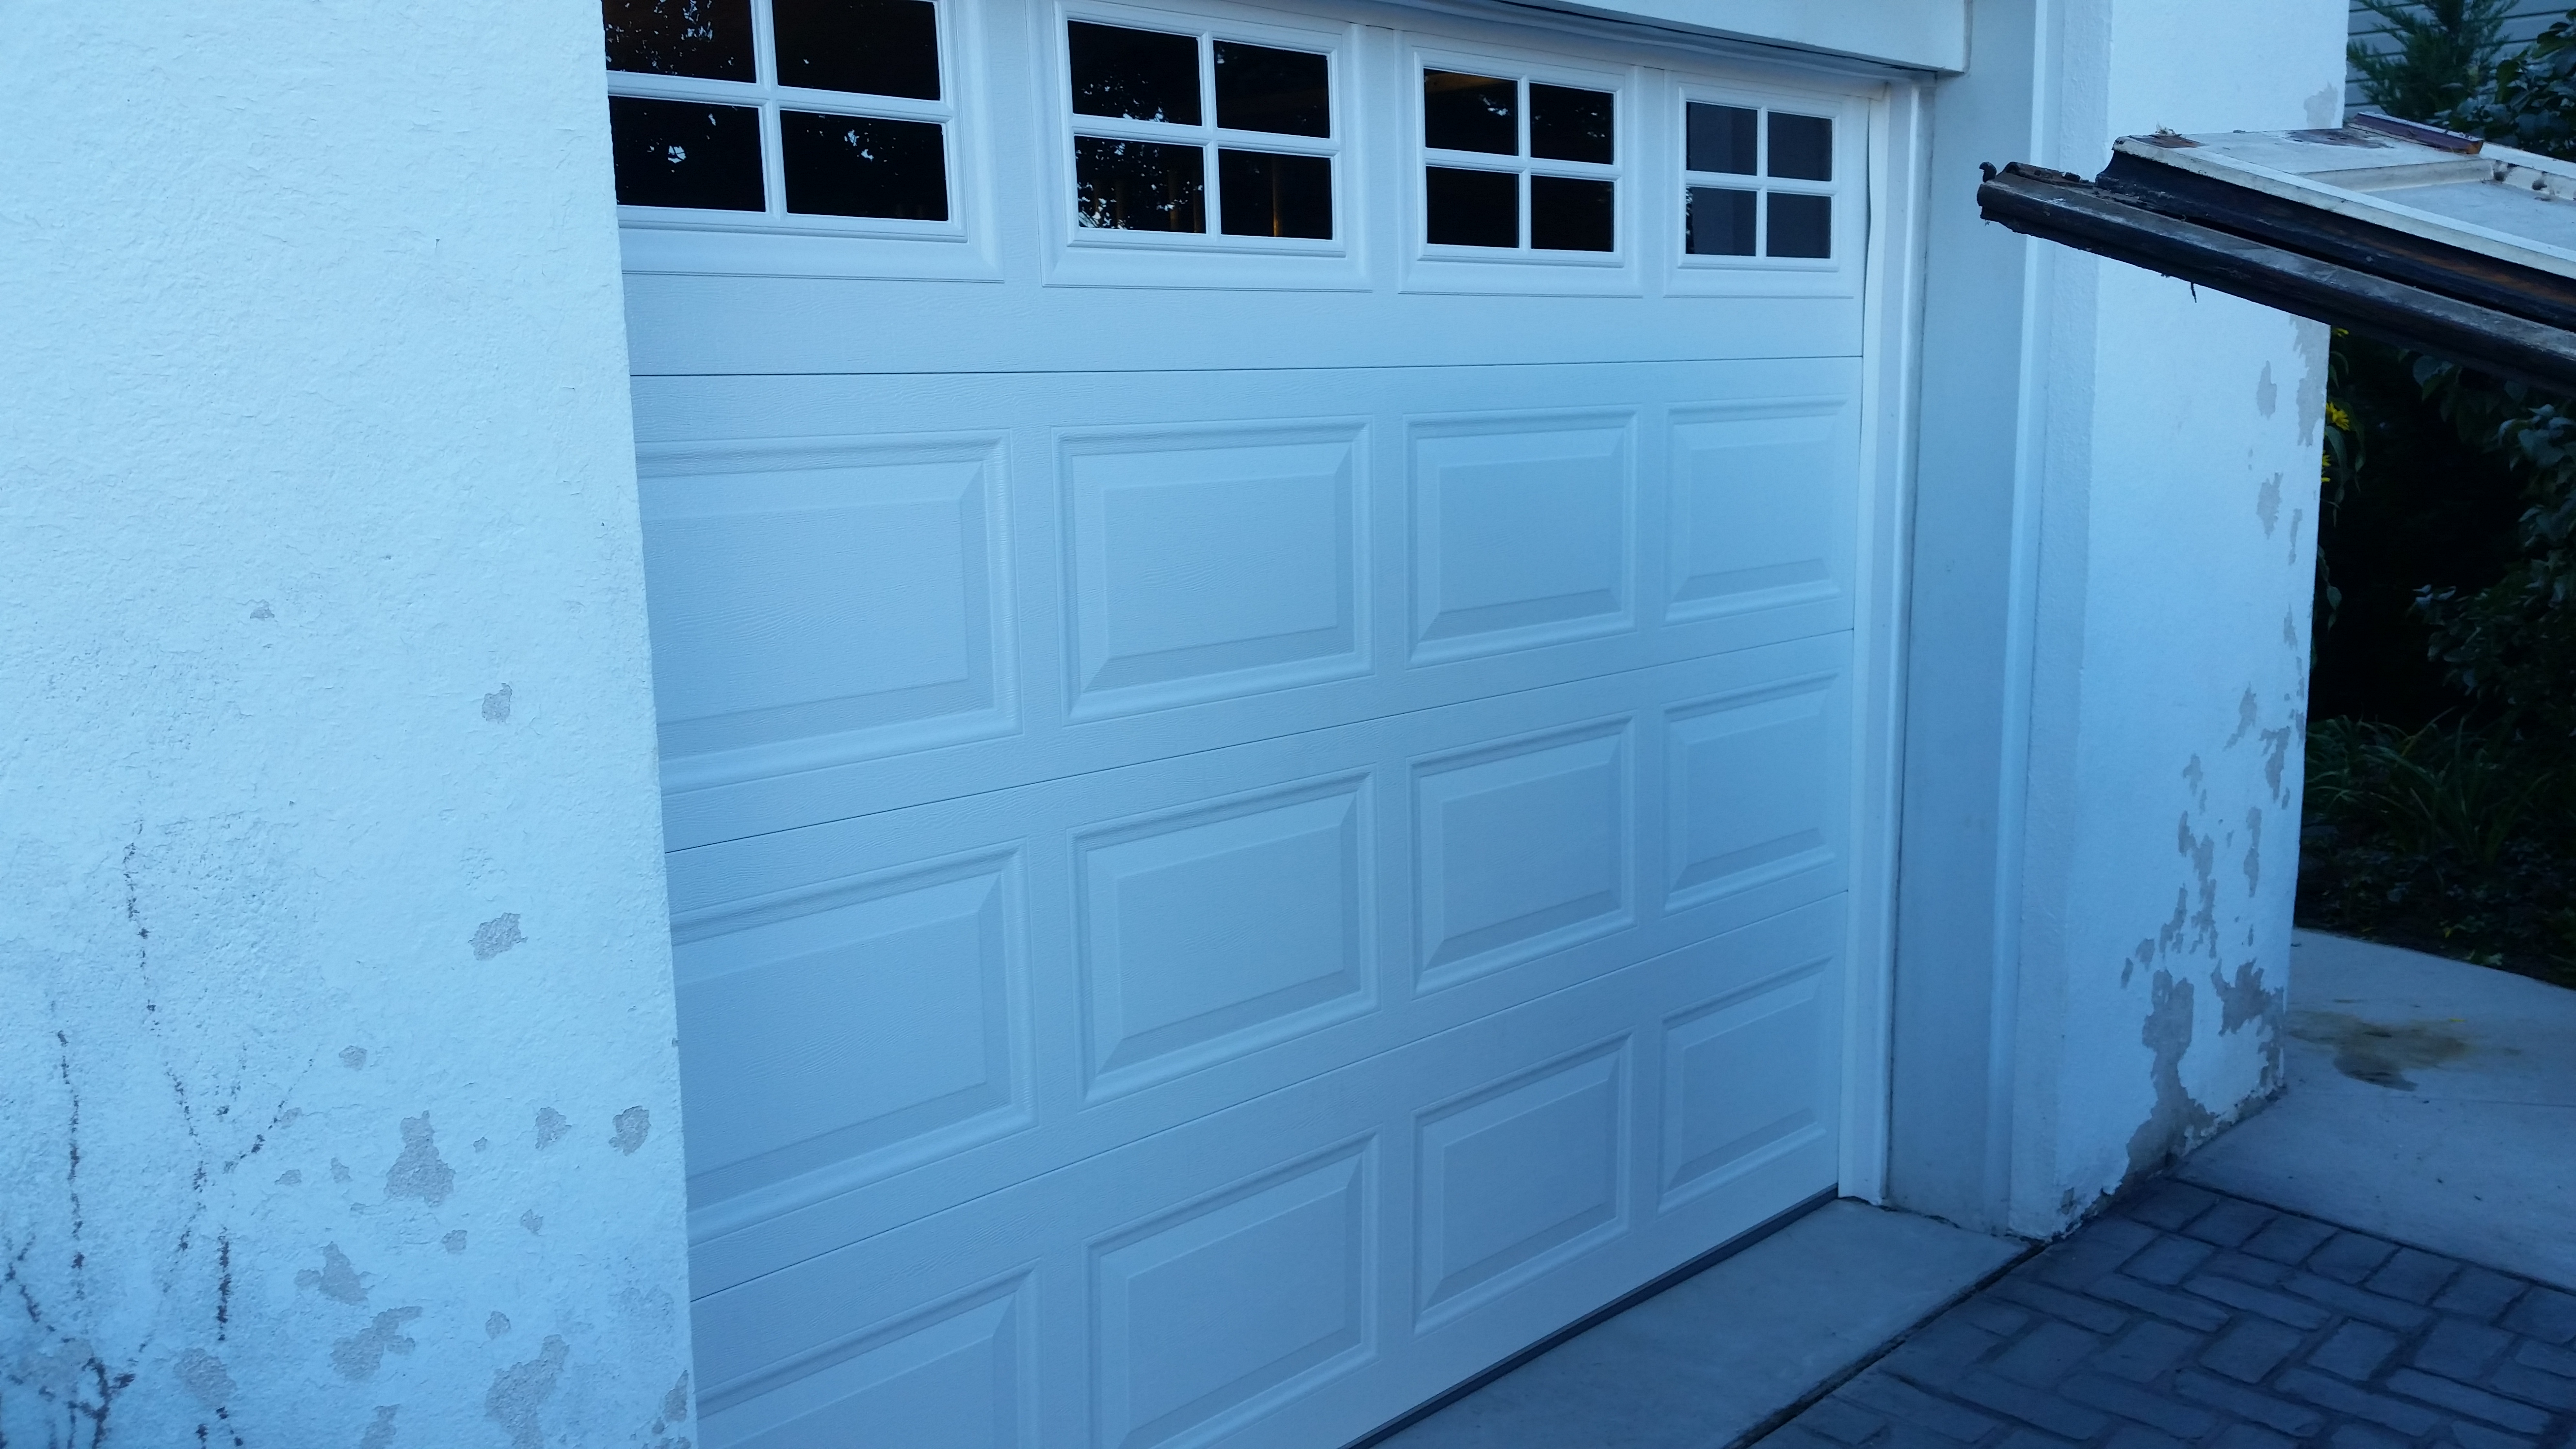 Logo Services/Products All your garage door u0026 opener needs; Payment method amex; Location We go anywhere from Philadelphia to New Jersey to Delaware . & A-Plus Garage Door Doctor Philadelphia PA 19154 - YP.com pezcame.com